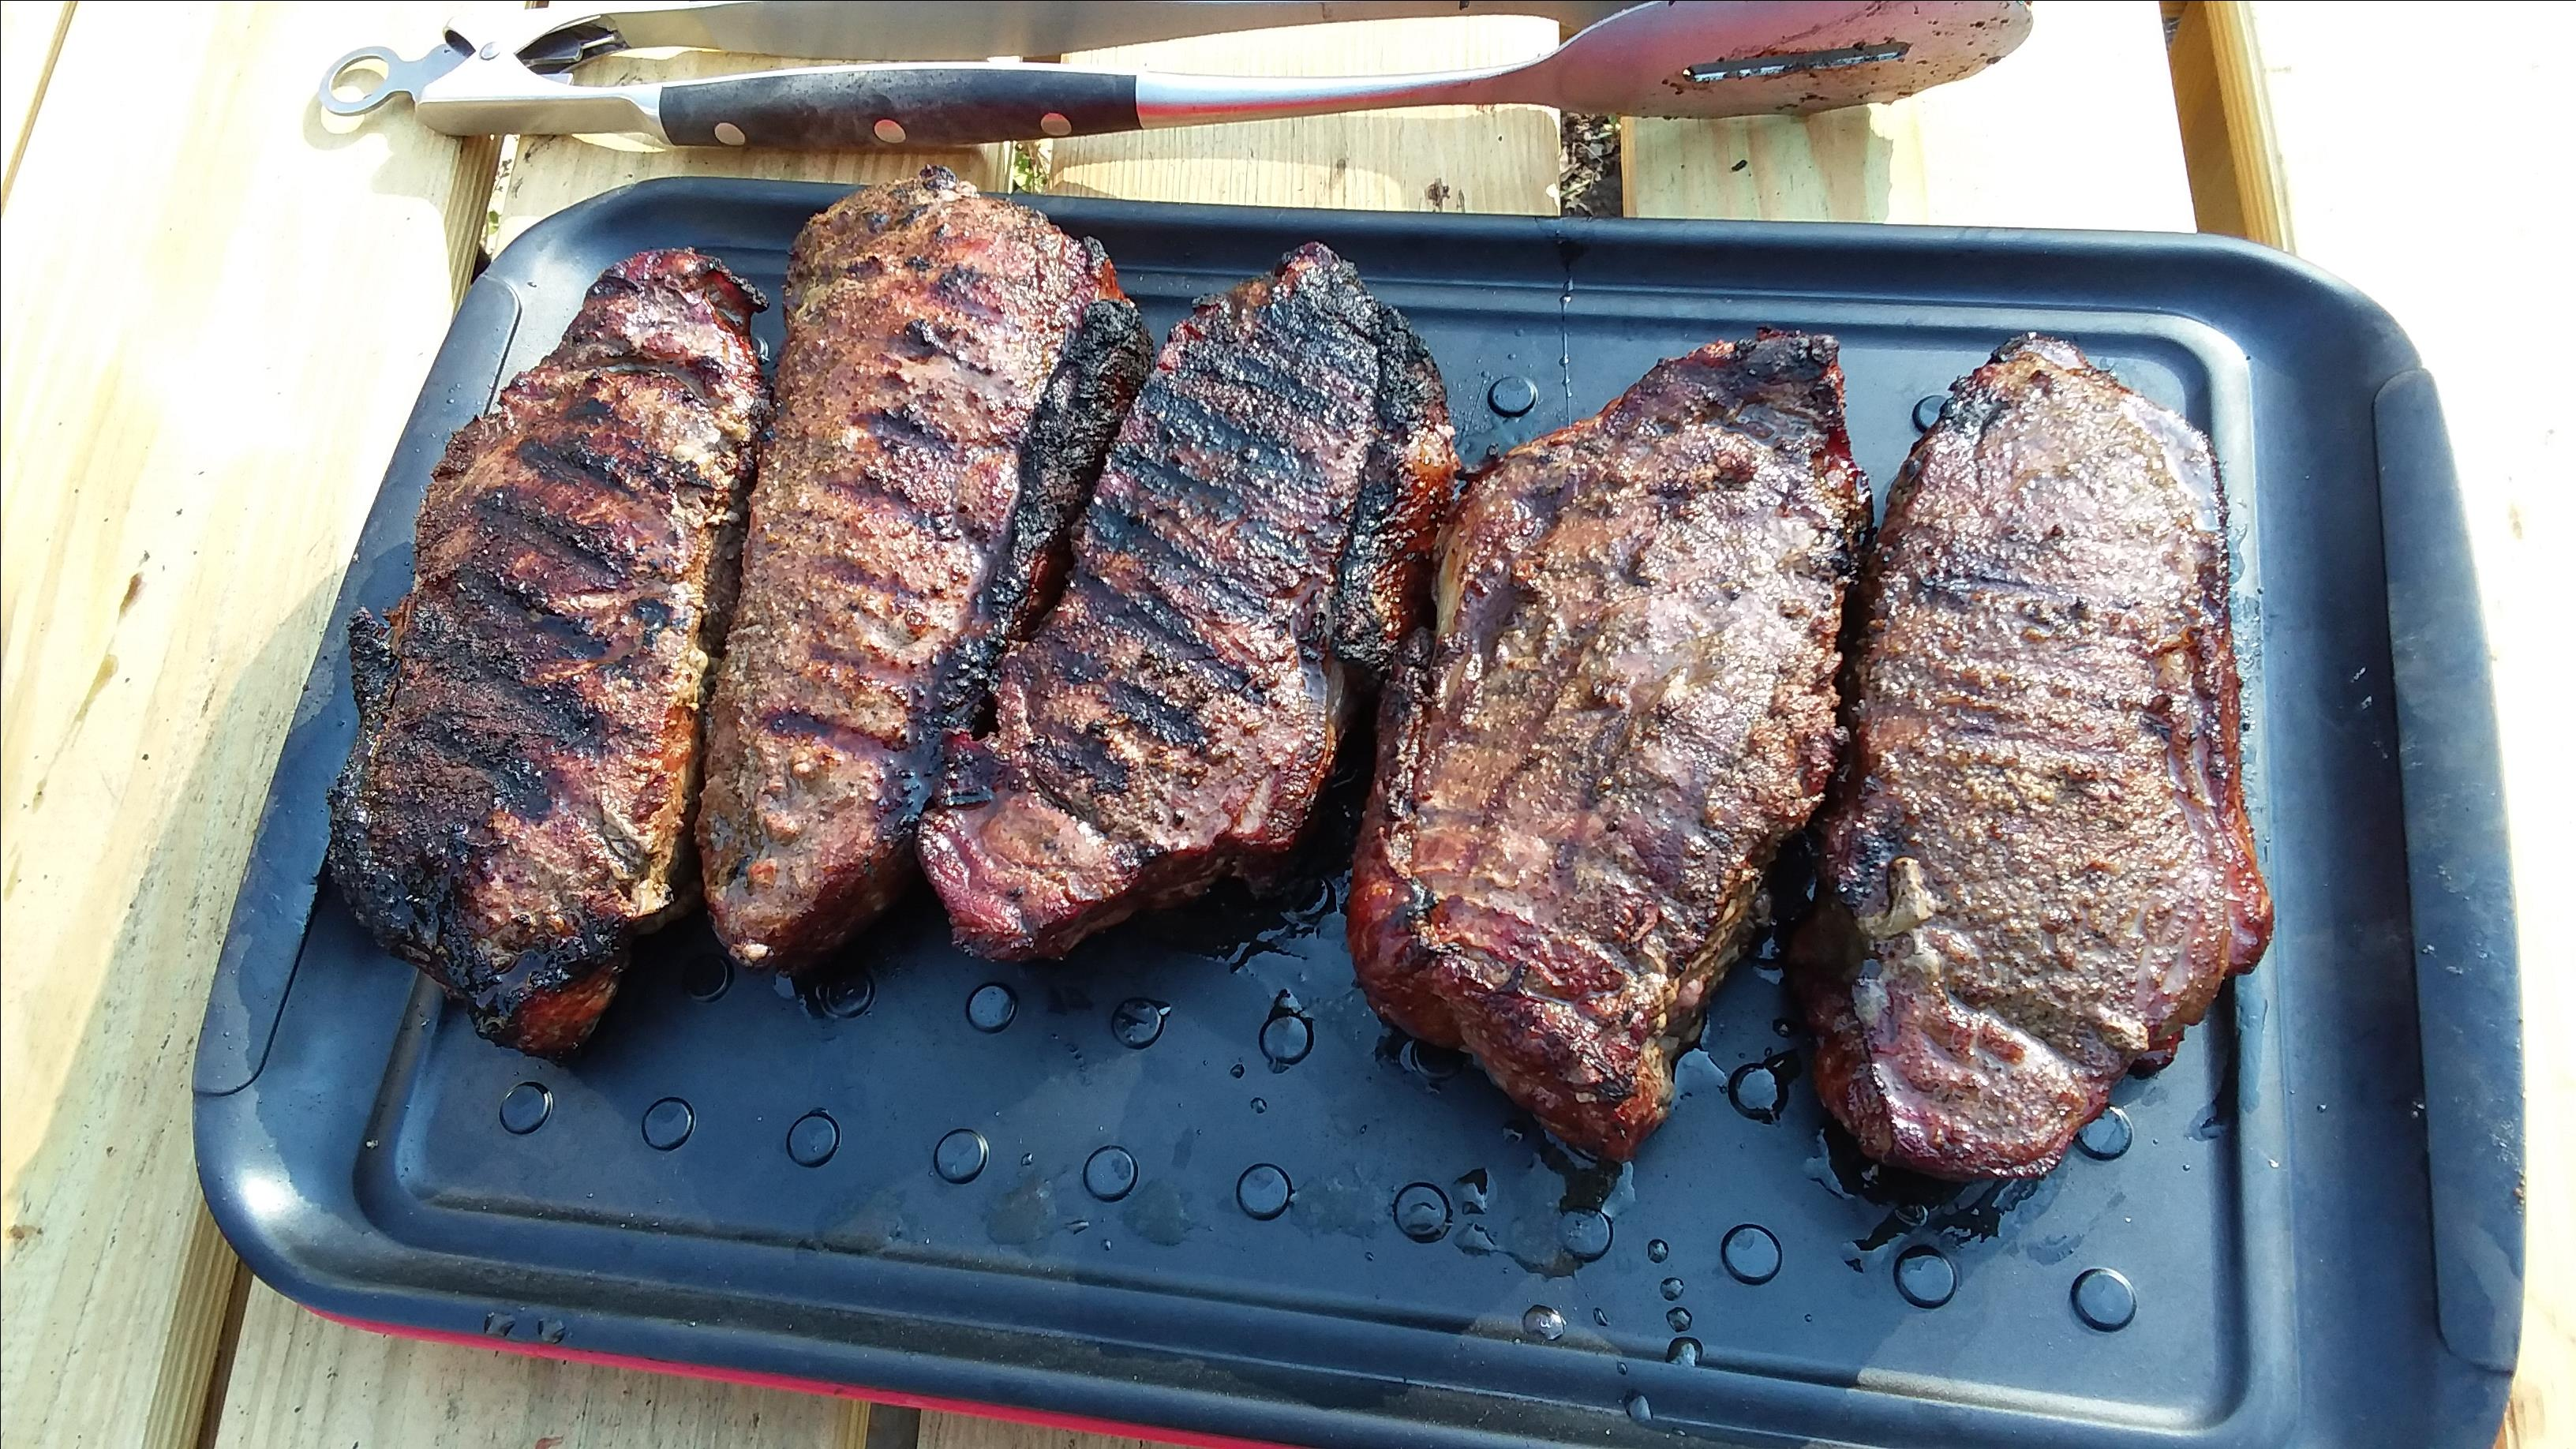 Grilling Thick Steaks - The Reverse Sear Jim Calkins